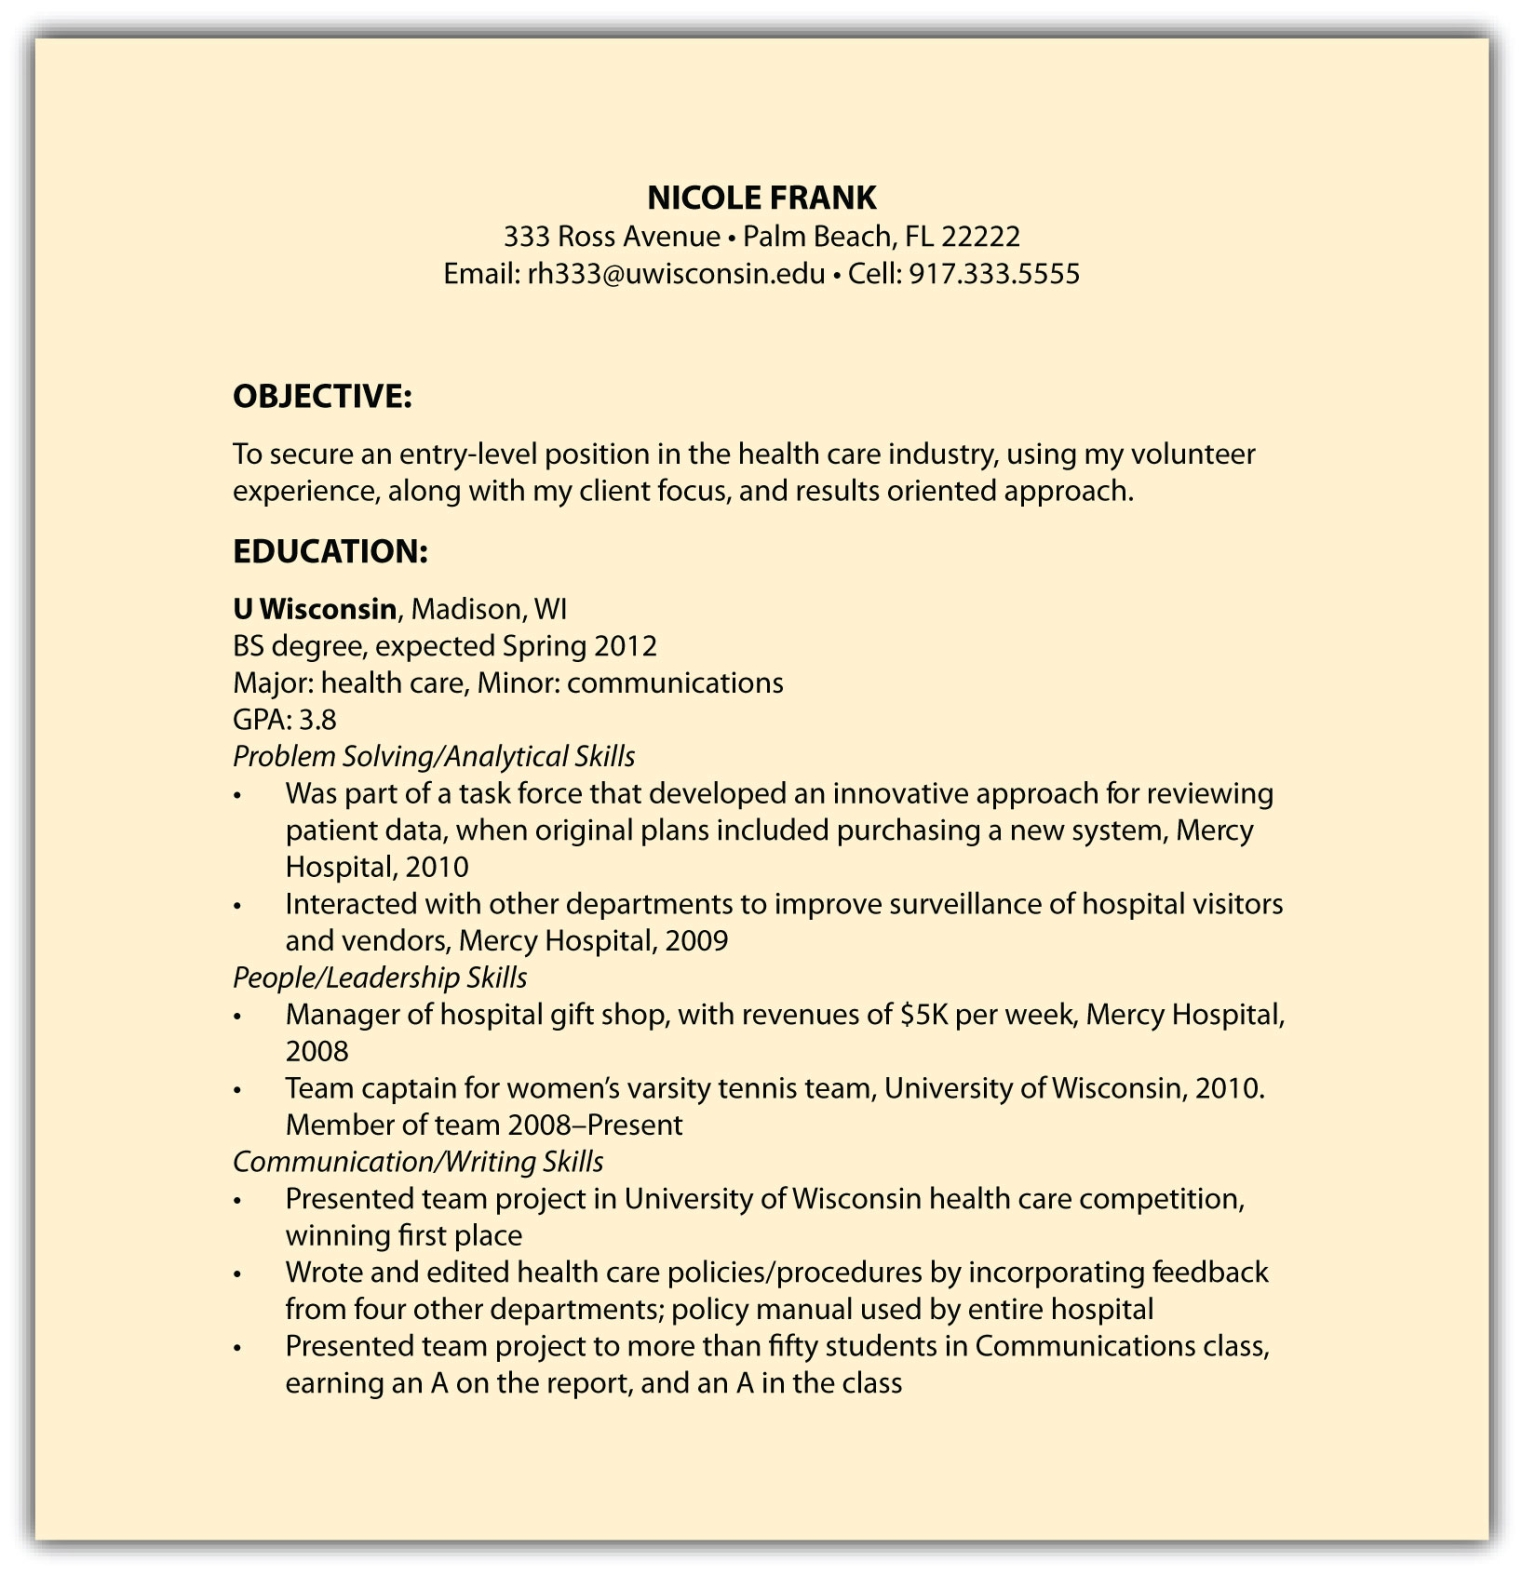 Resume Objectives For High School Graduates : Writing And Editing Services : Attractionsxpress